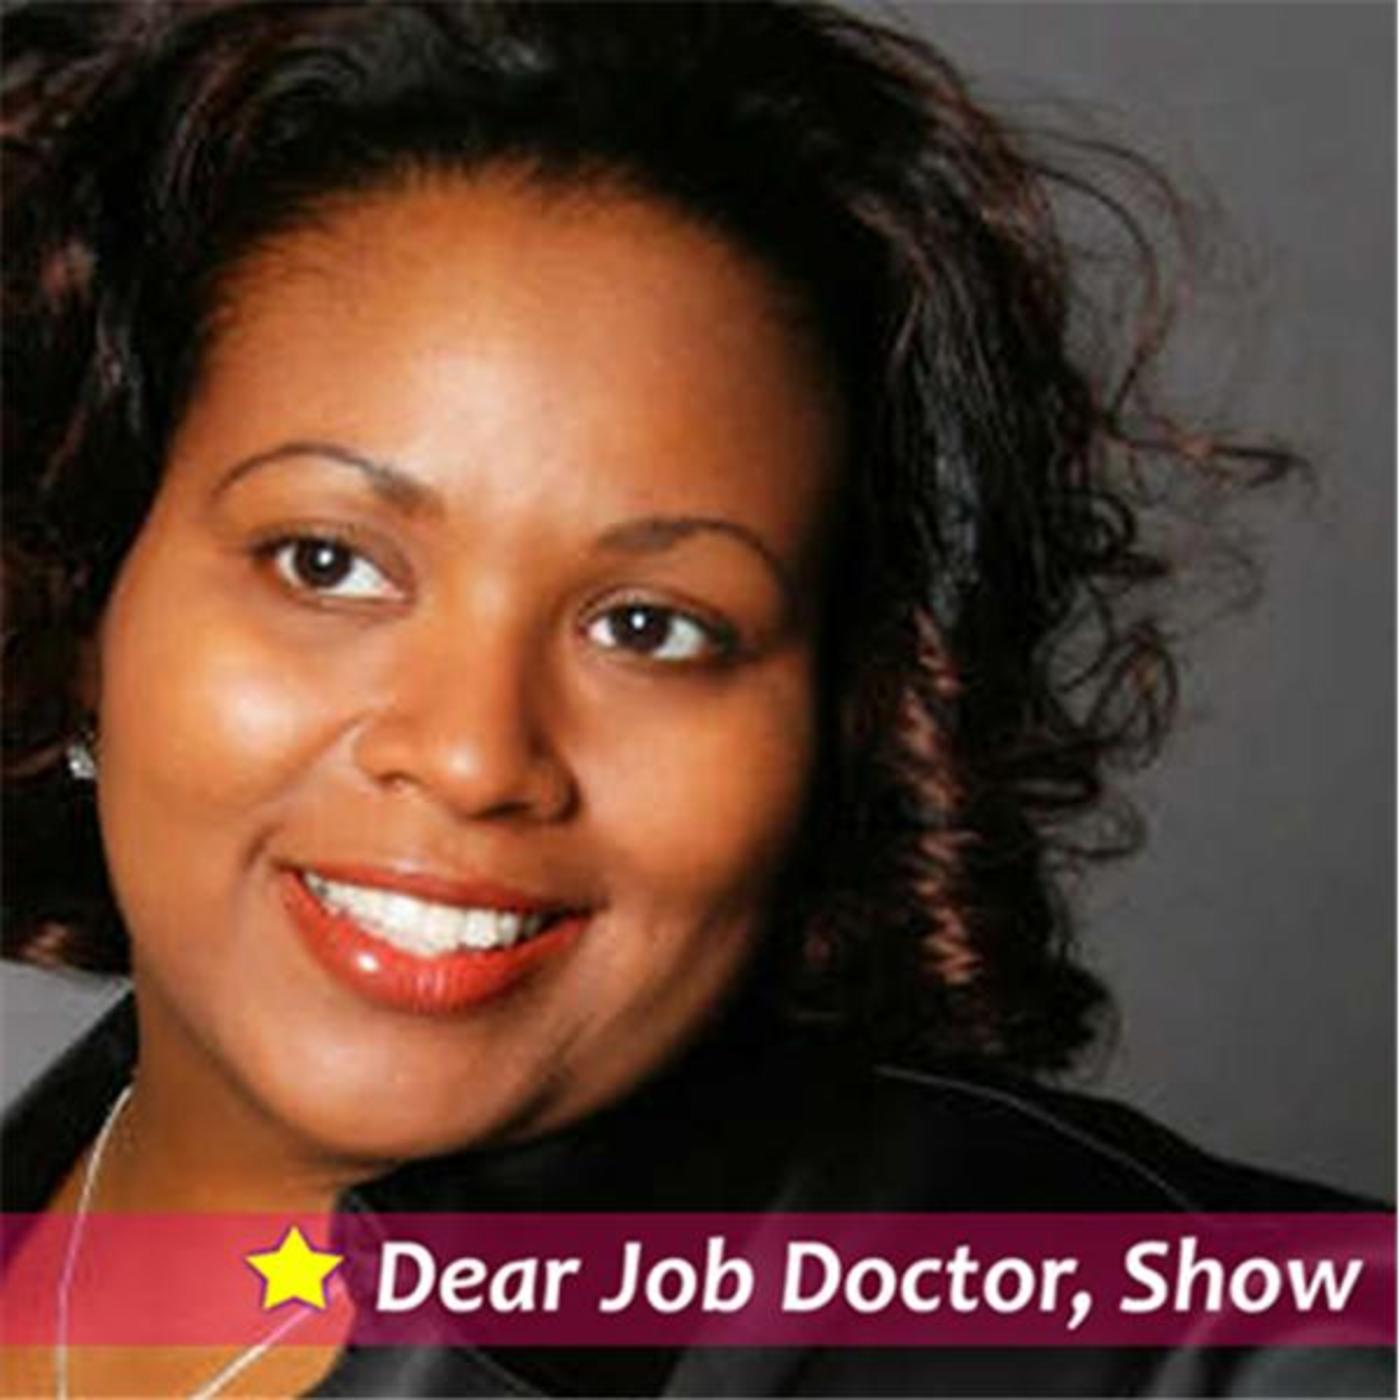 Dear Job Doctor,  Advice Show